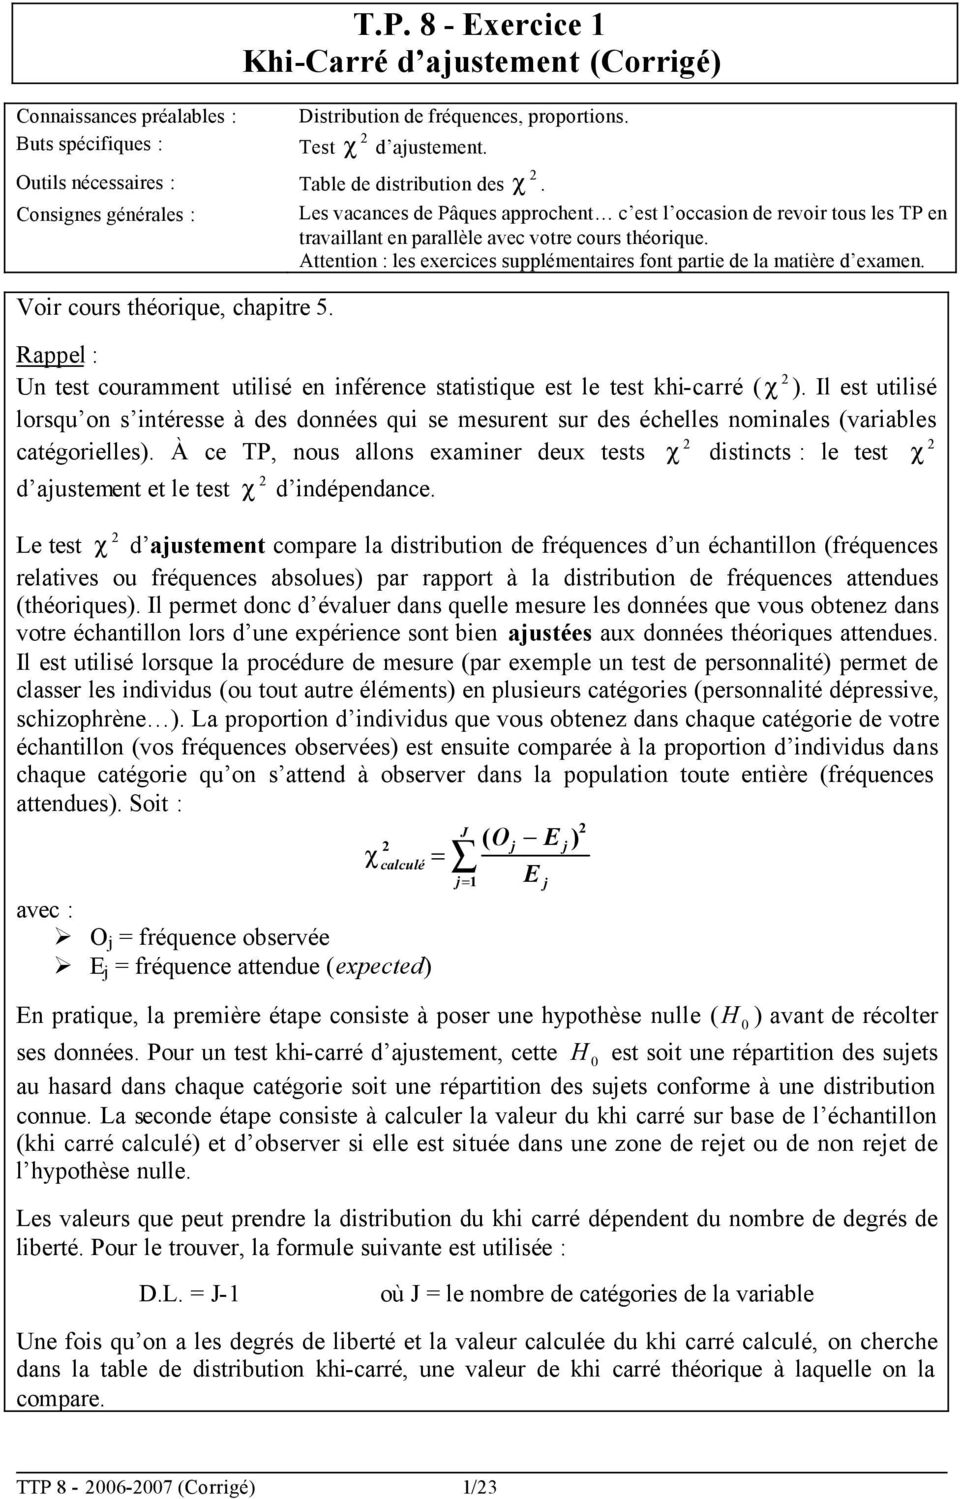 T p 8 exercice 1 khi carr d ajustement corrig pdf for Table khi carre